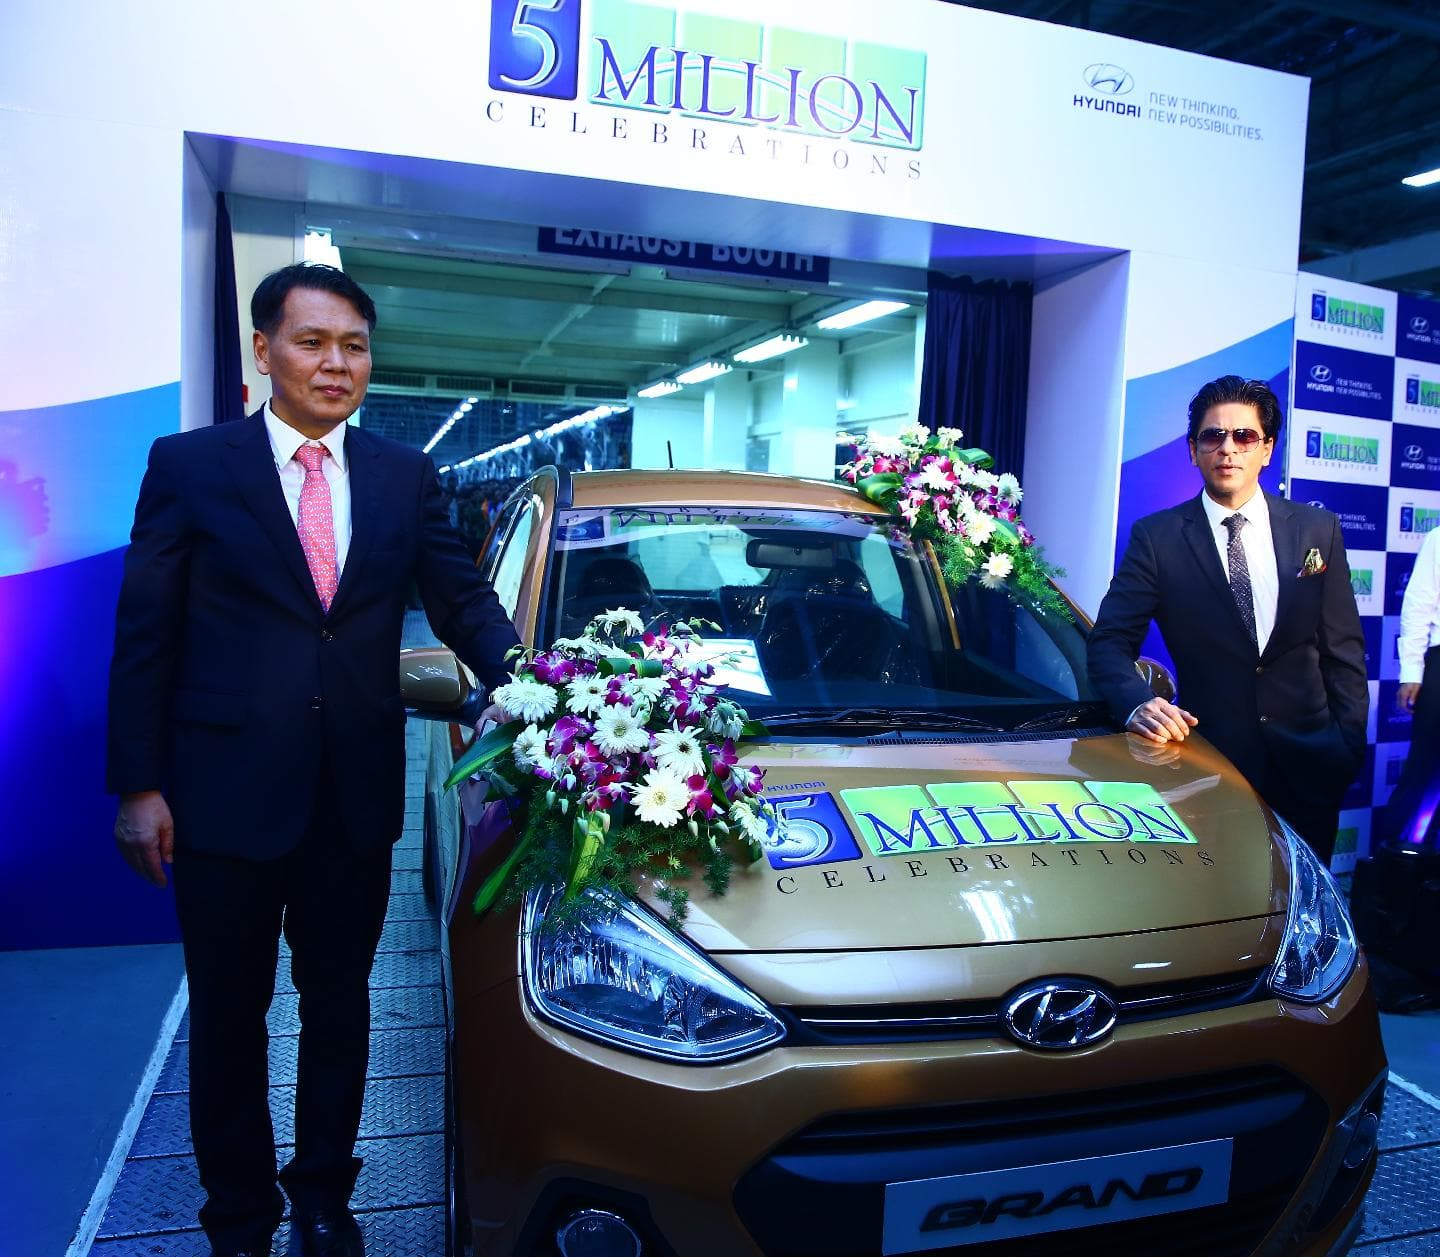 Hyundai Motor India Rolls Out 5 Millionth Car